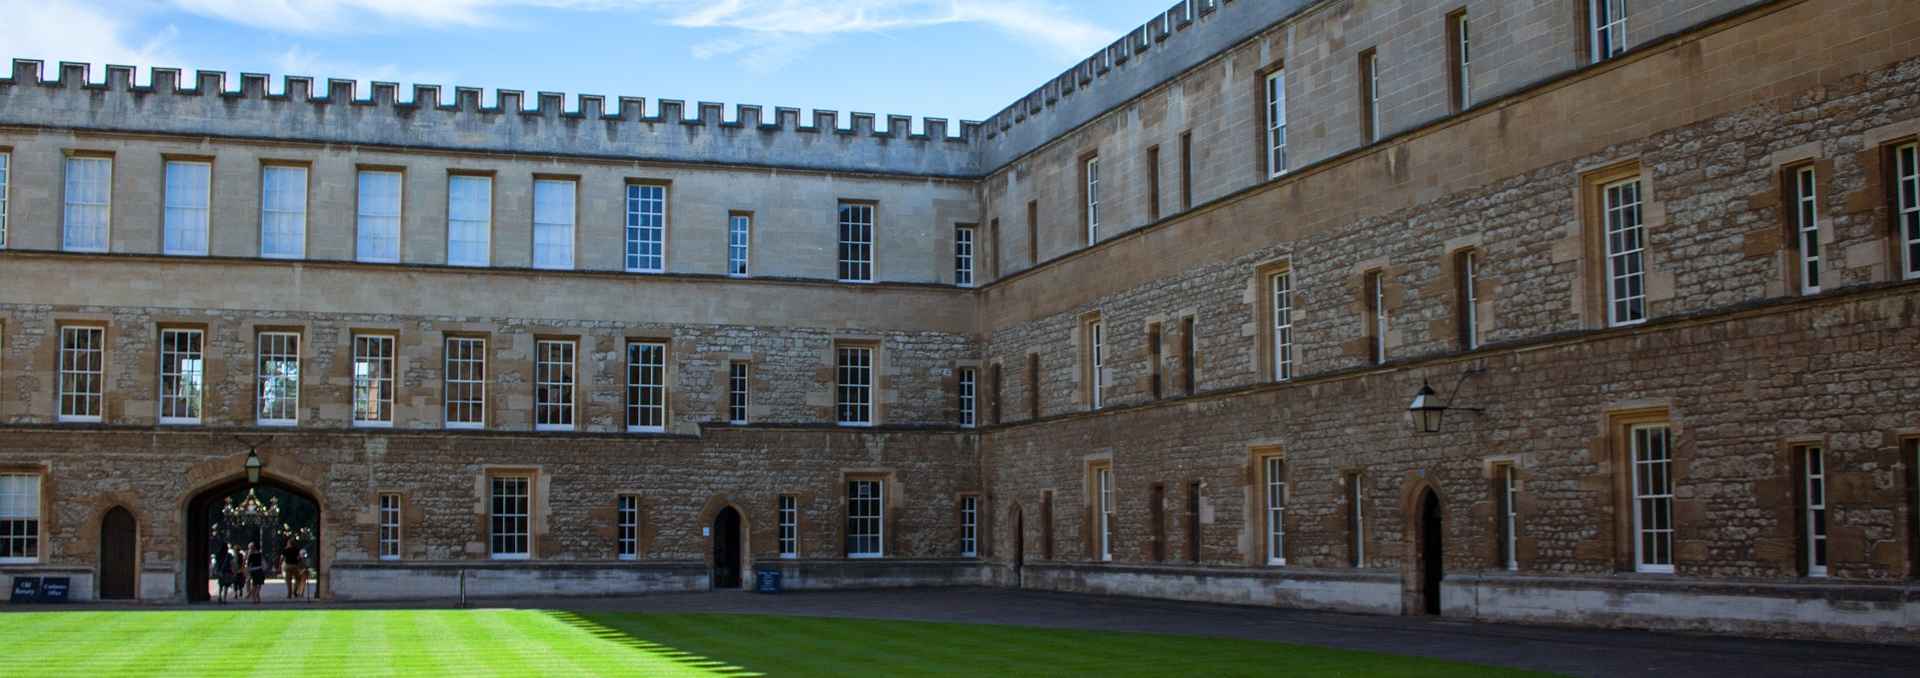 Oxford University, Oxfordshire SWS Locations